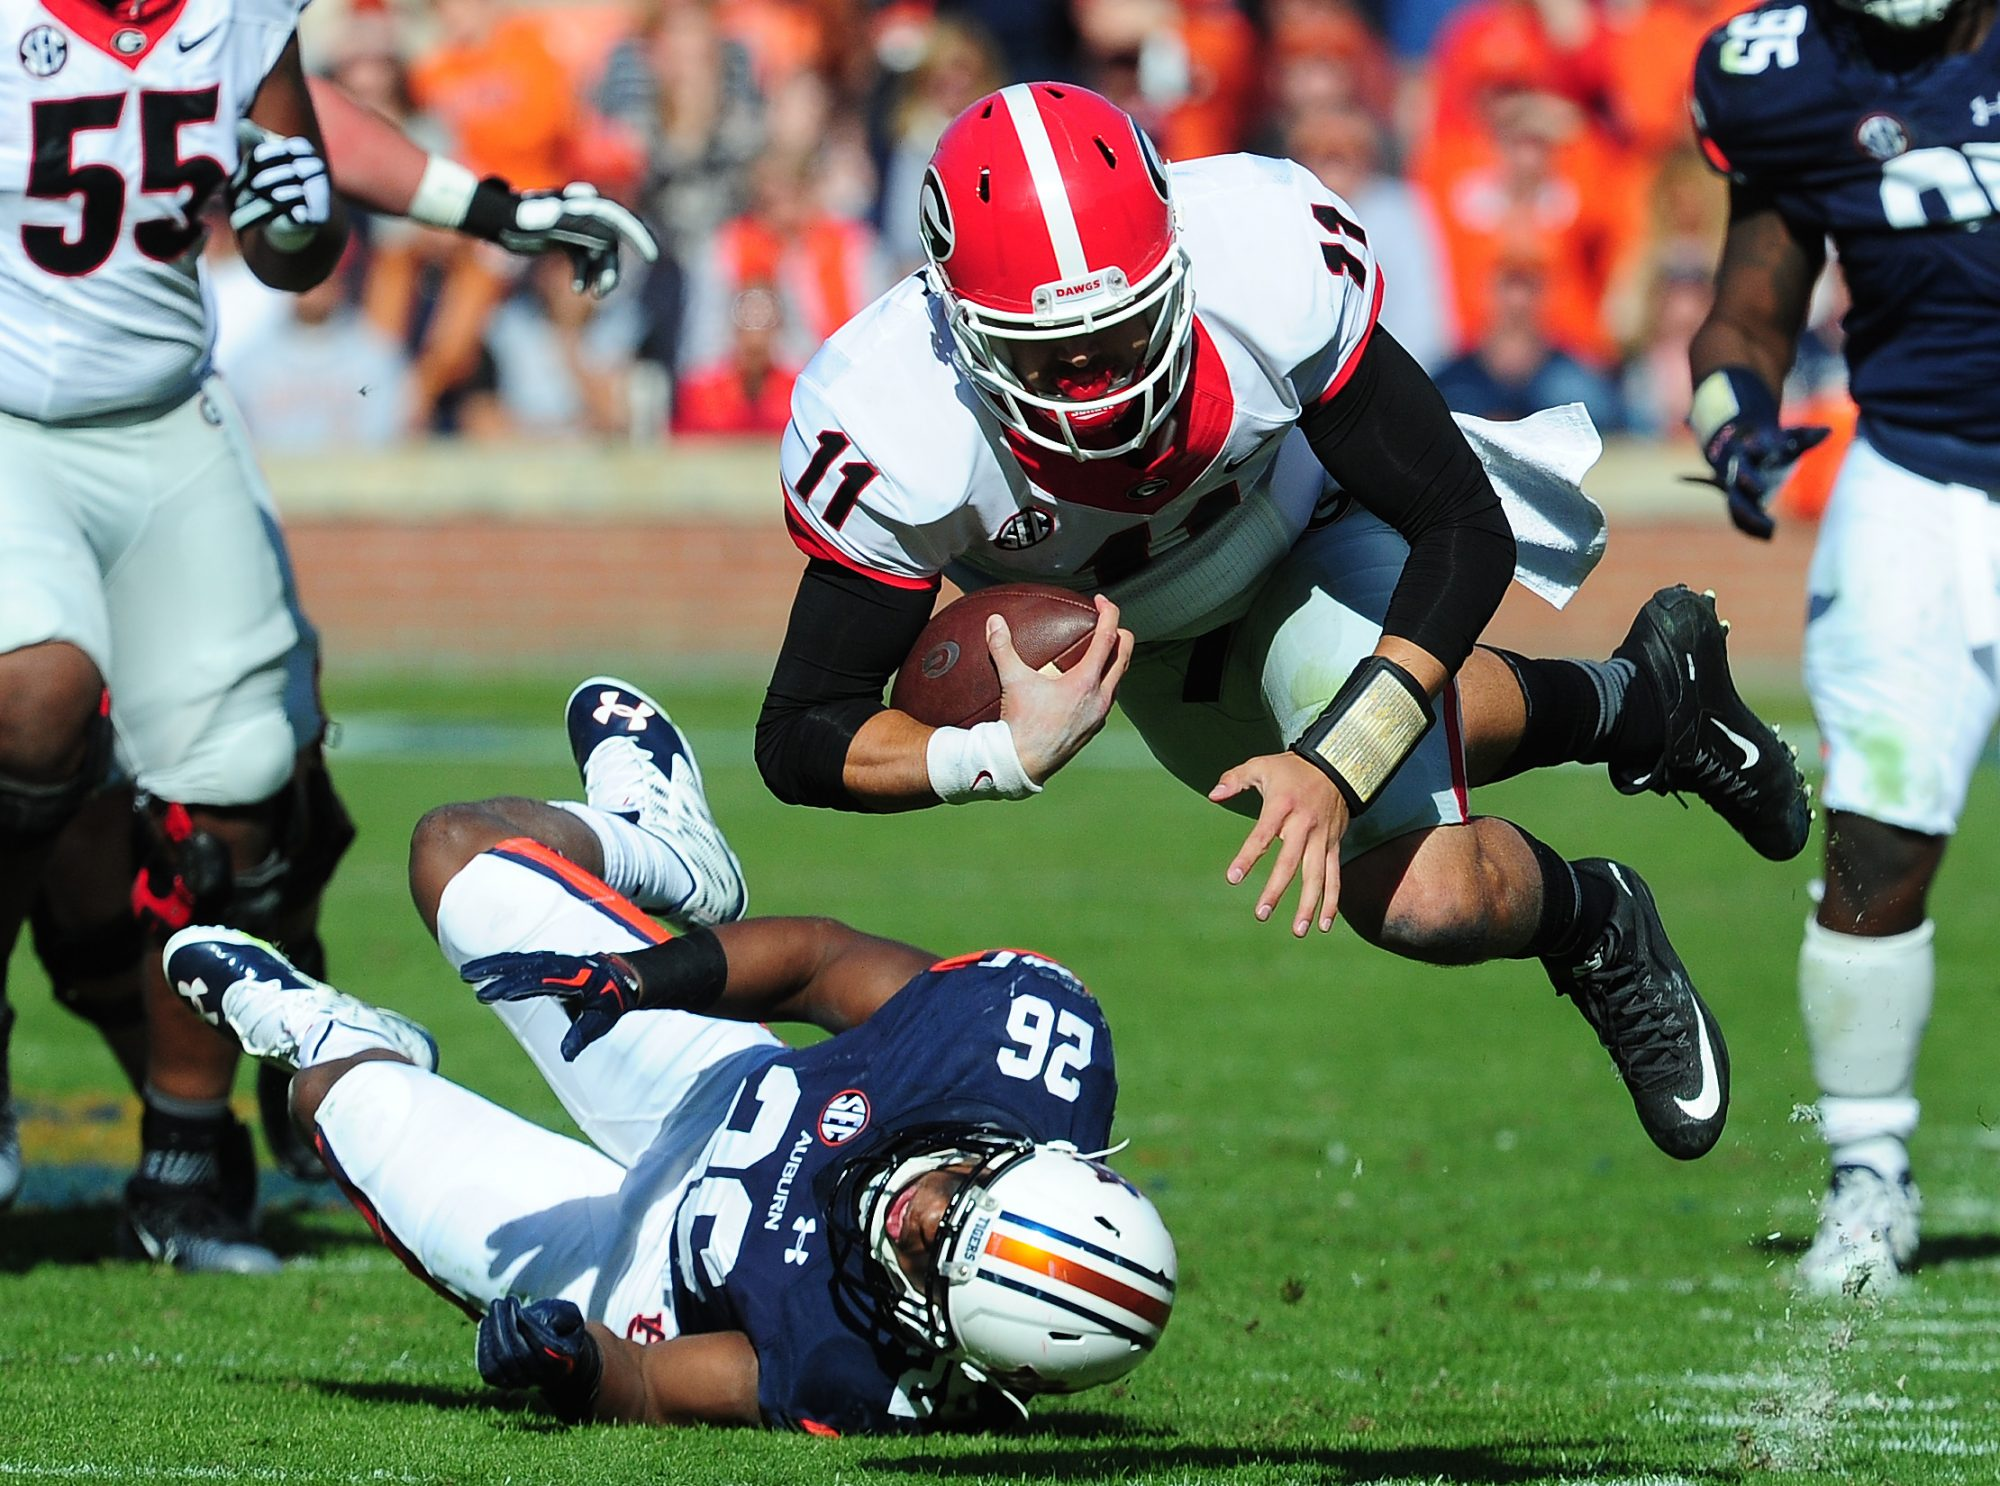 Georgia vs. Auburn Football